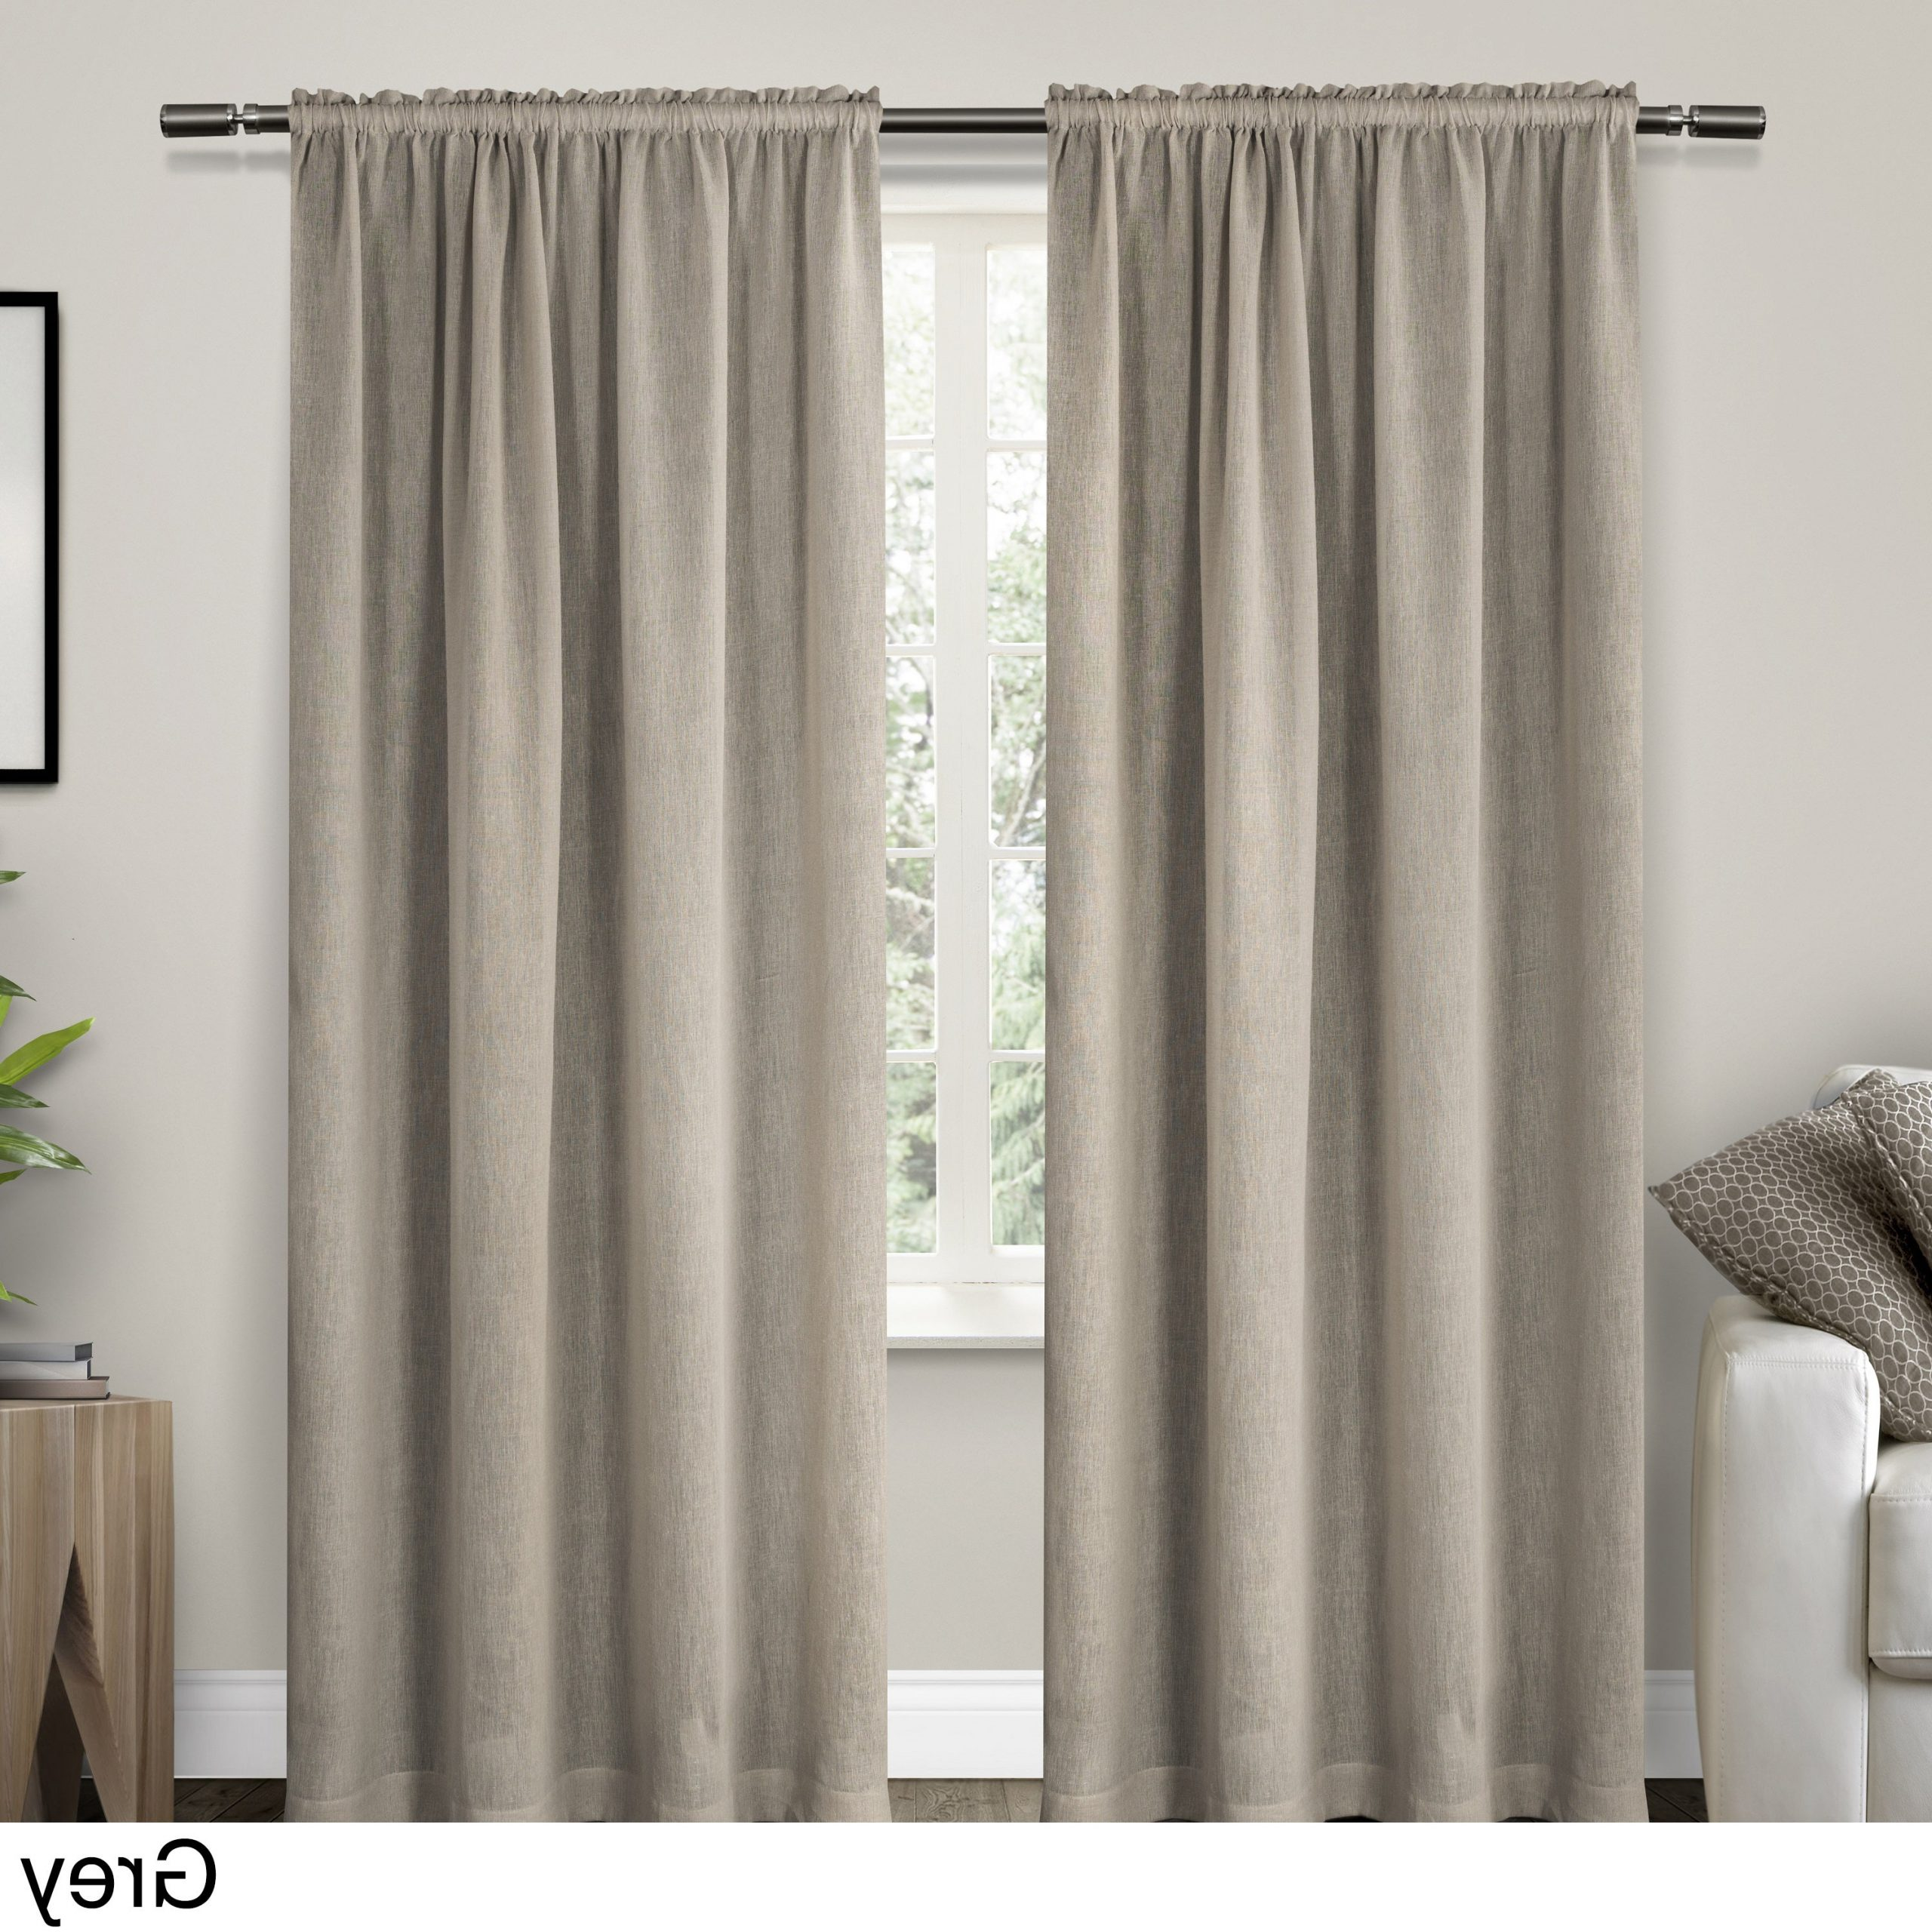 Belgian Sheer Window Curtain Panel Pairs With Rod Pocket Inside Well Known Ati Home Belgian Sheer Window Curtain Panel Pair With Rod Pocket (View 3 of 20)